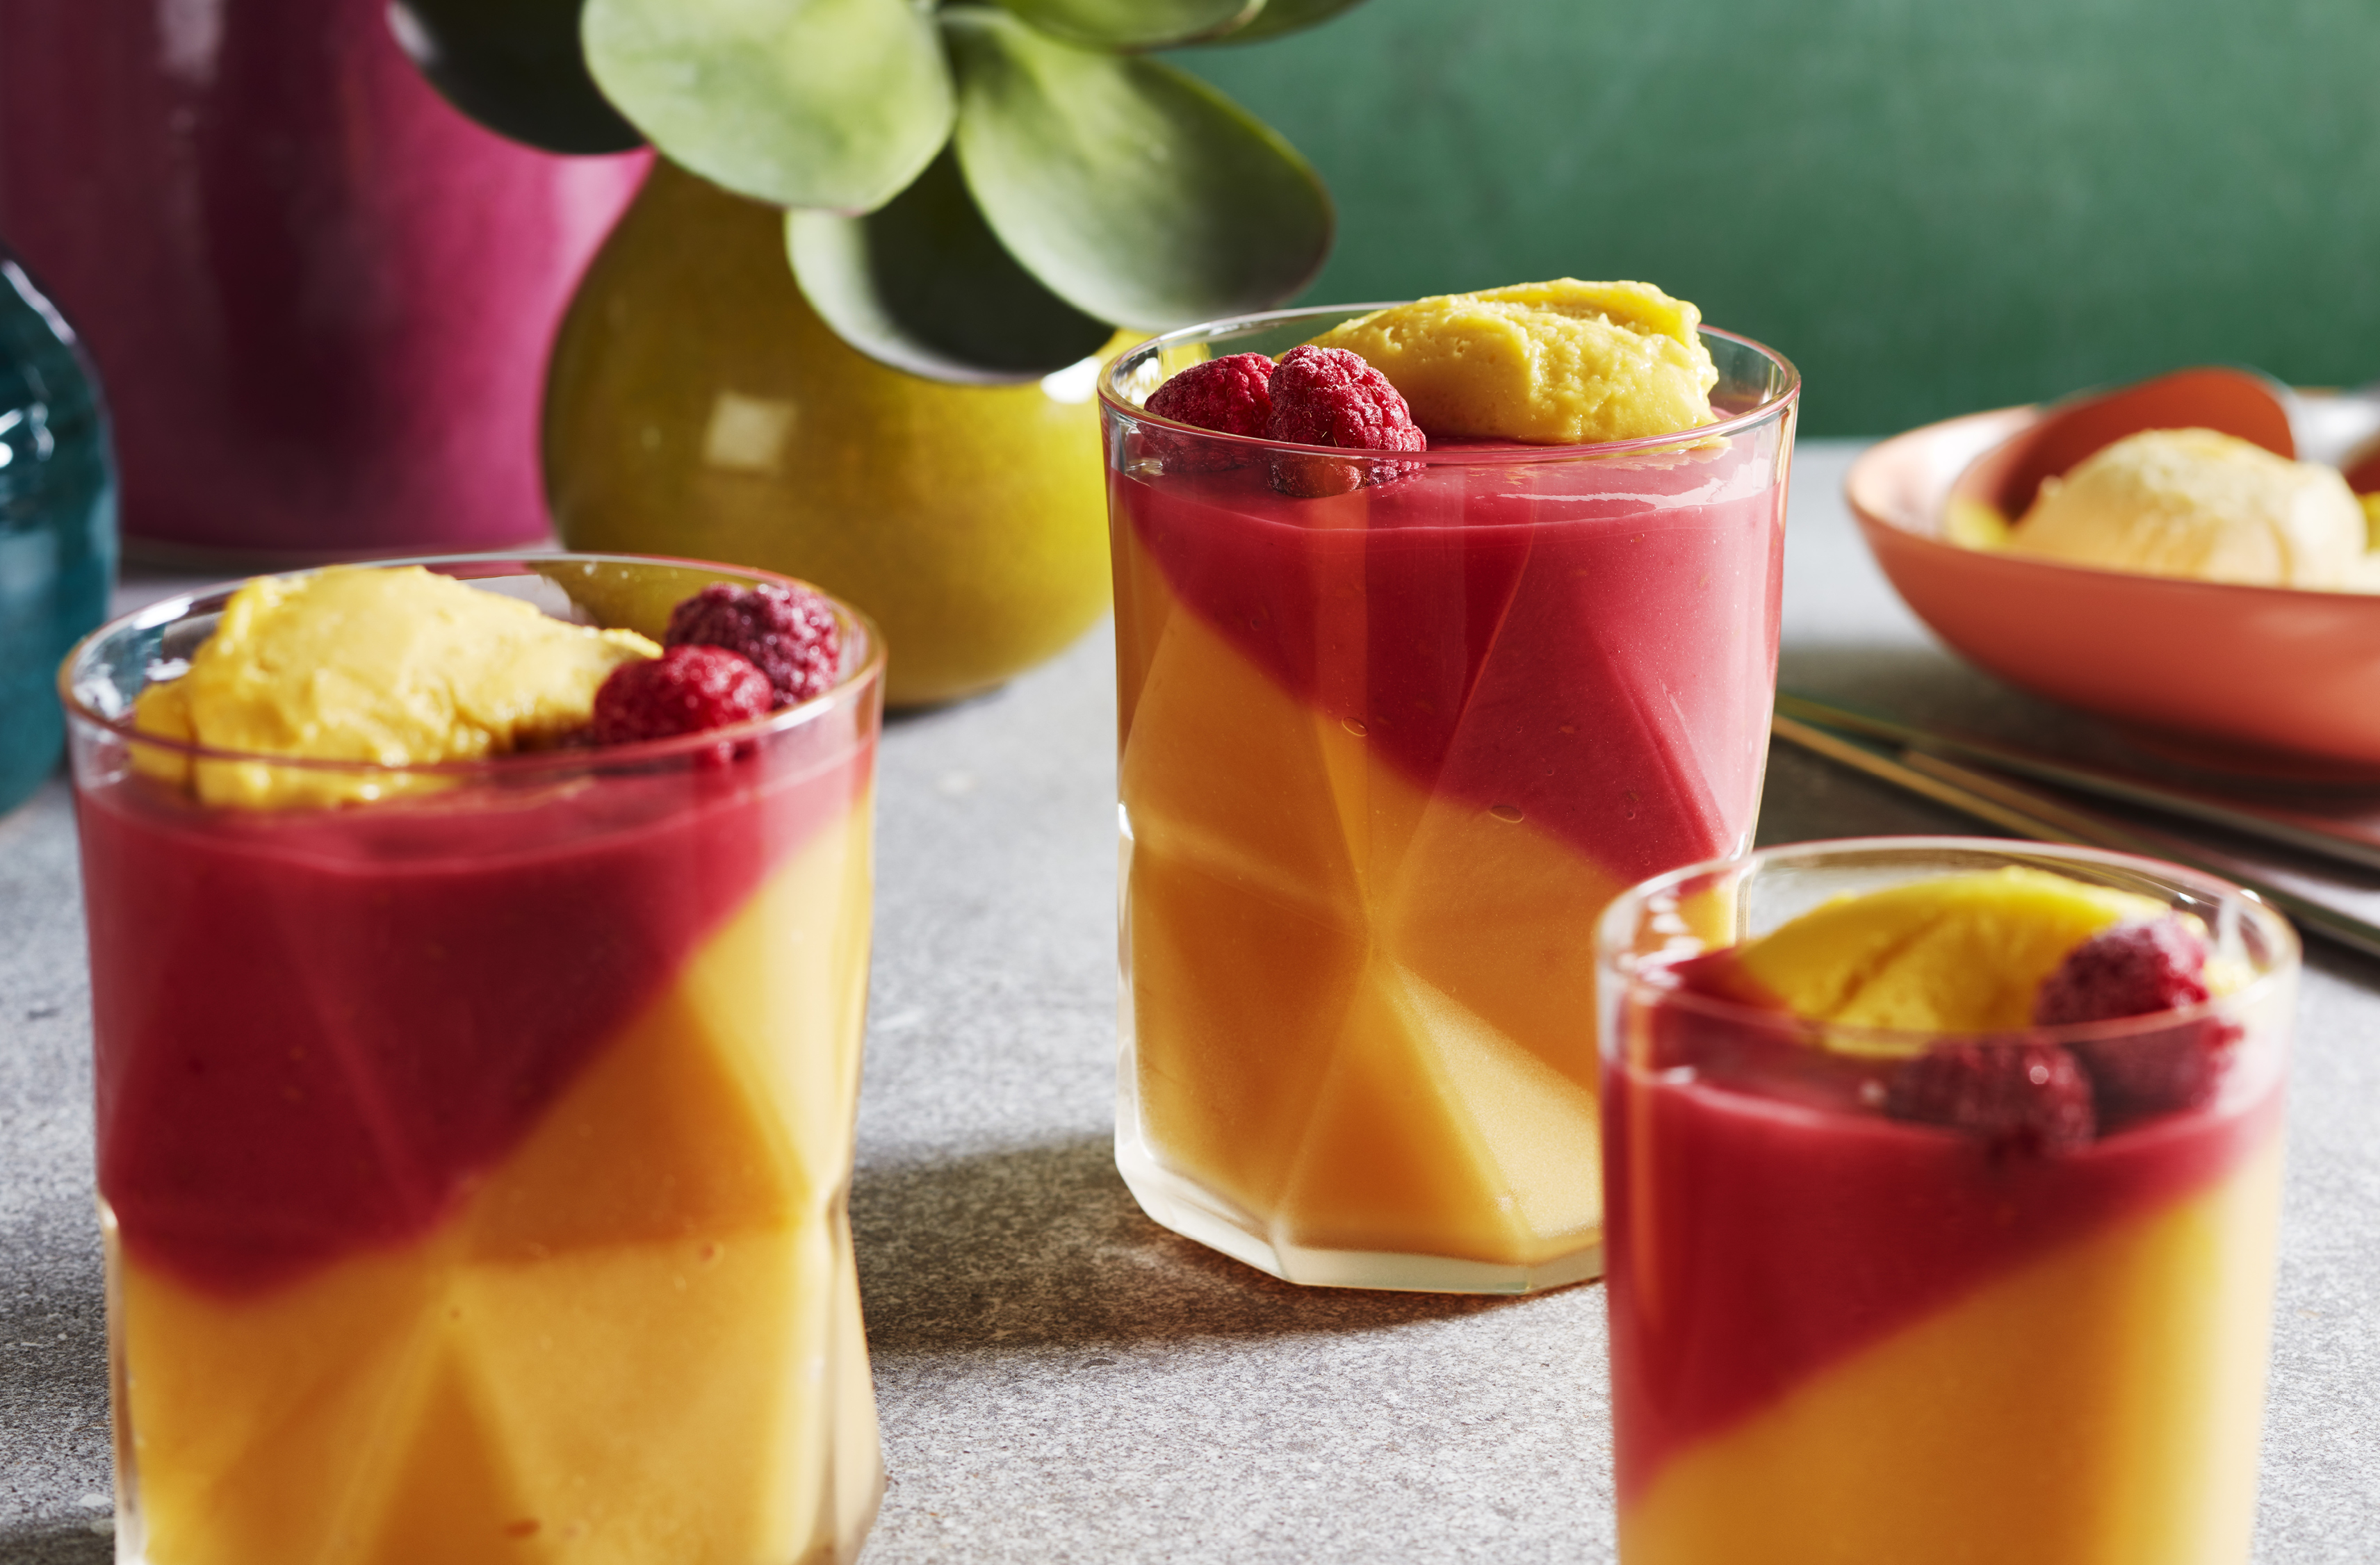 3 glasses of mango melba shake garnished with fresh raspberries